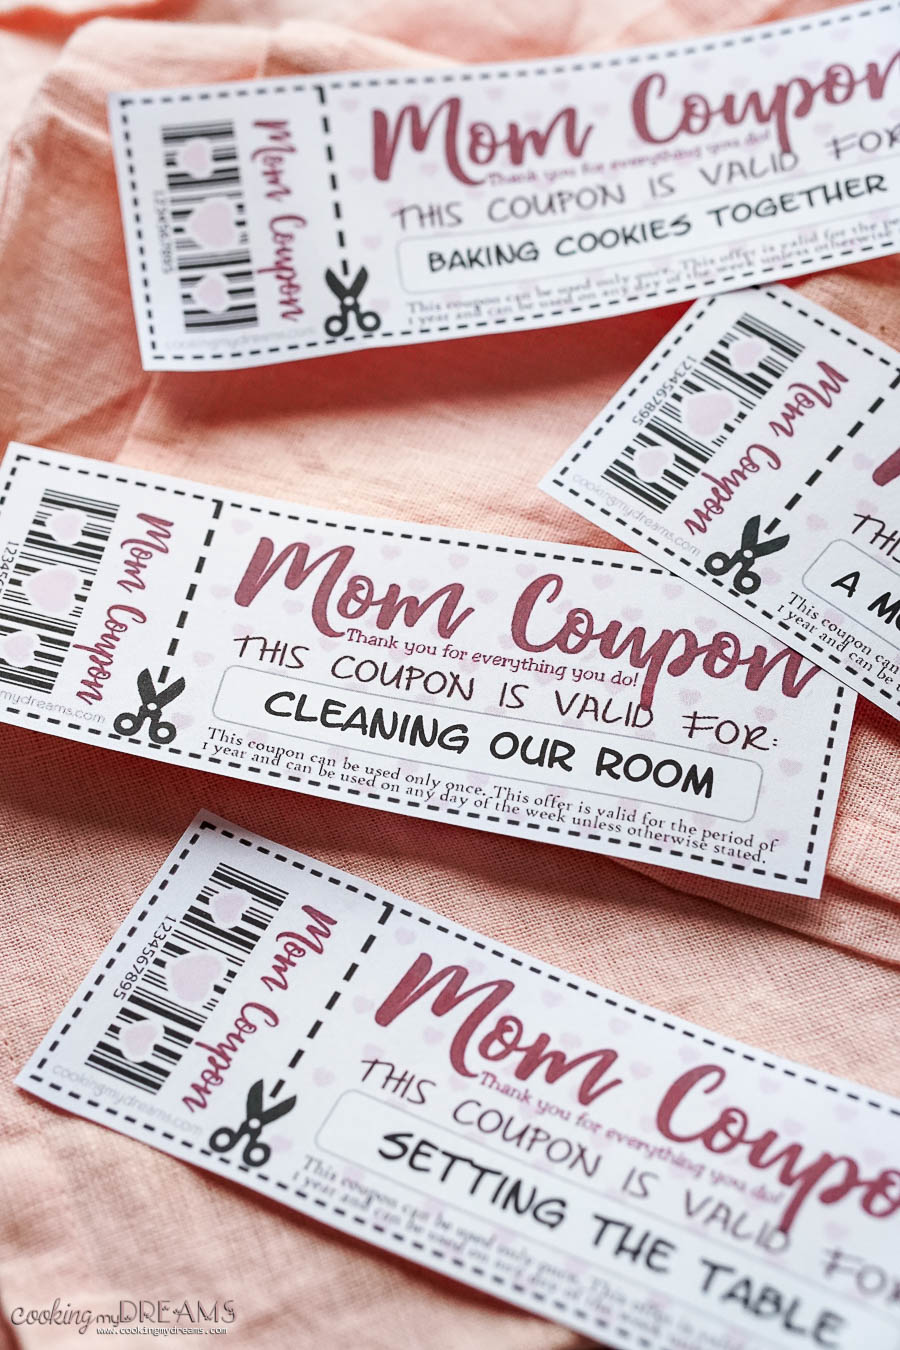 examples of mother's day coupons